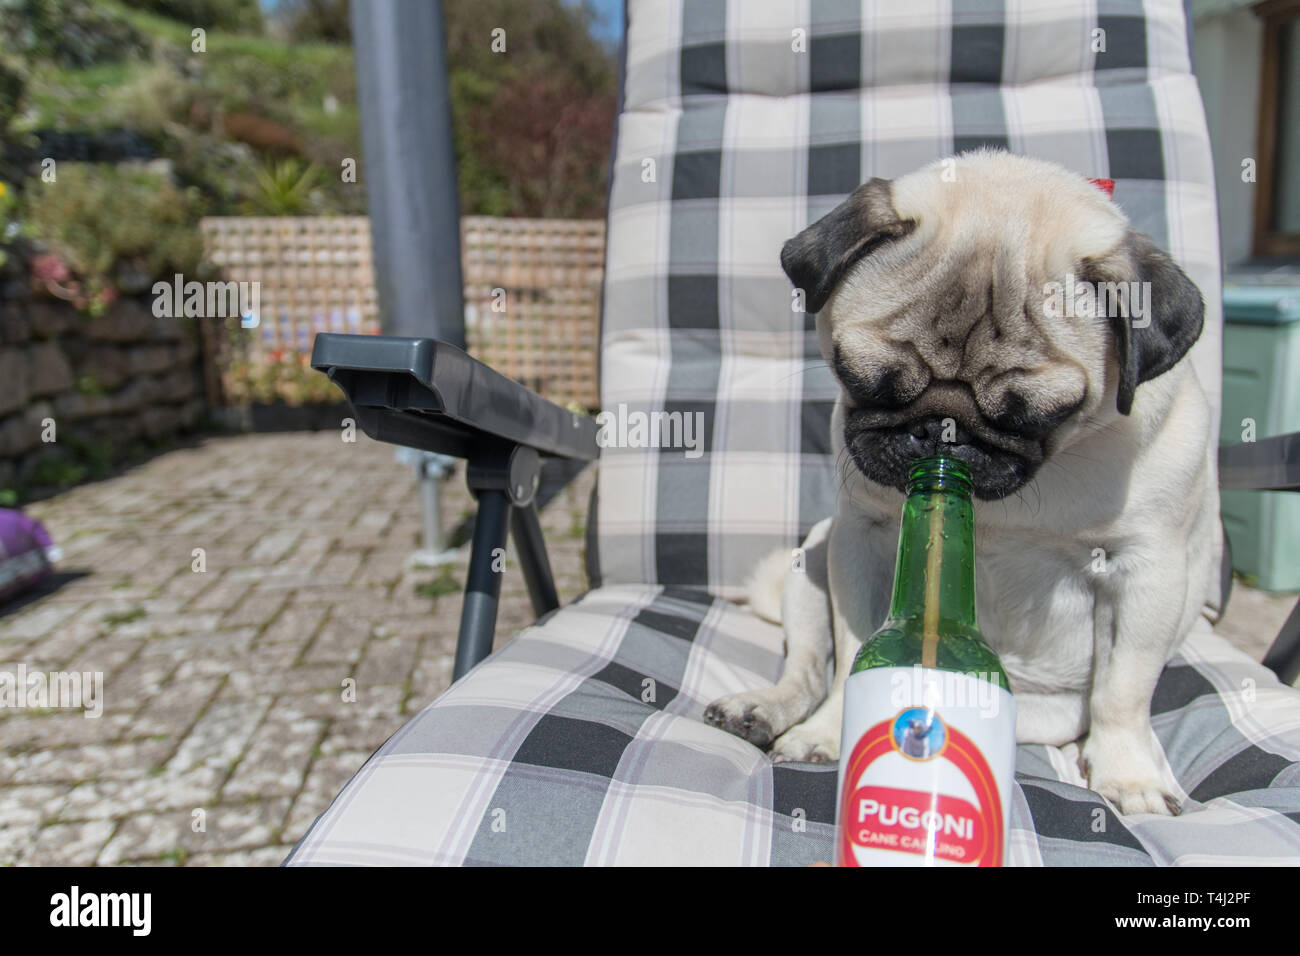 Mousehole, Cornwall, UK. 17th April 2019. UK Weather. Titan the pug out enjoying the sunshine ahead of the Easter bank holiday. Credit: Simon Maycock/Alamy Live News Stock Photo